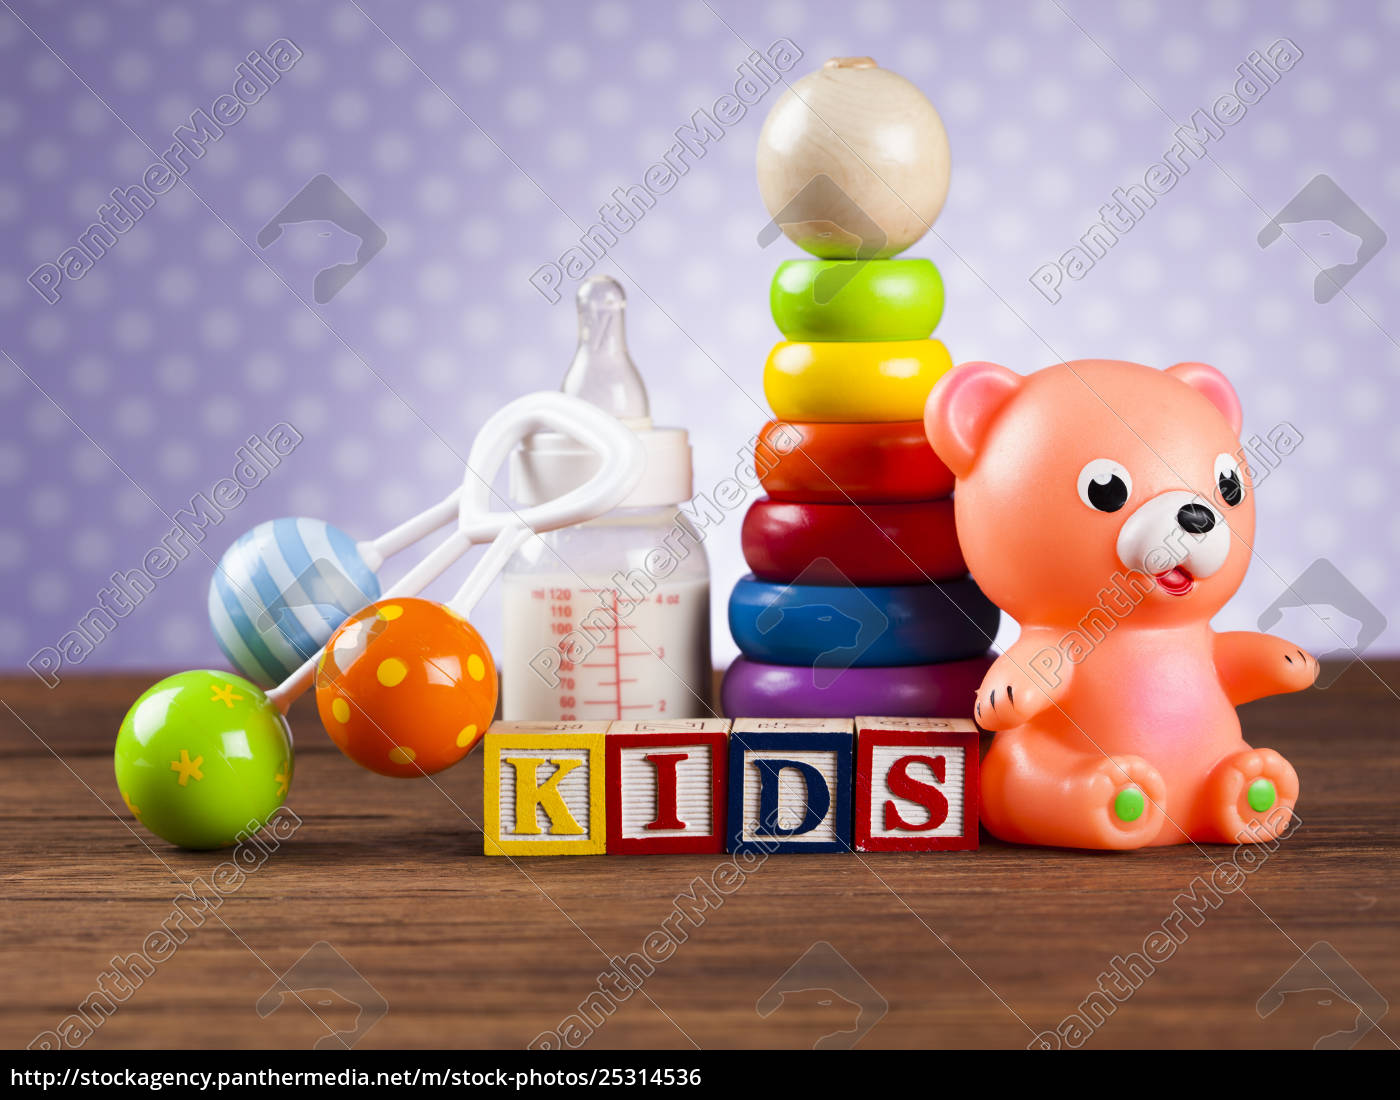 kids, world, toy, on, a, wooden - 25314536